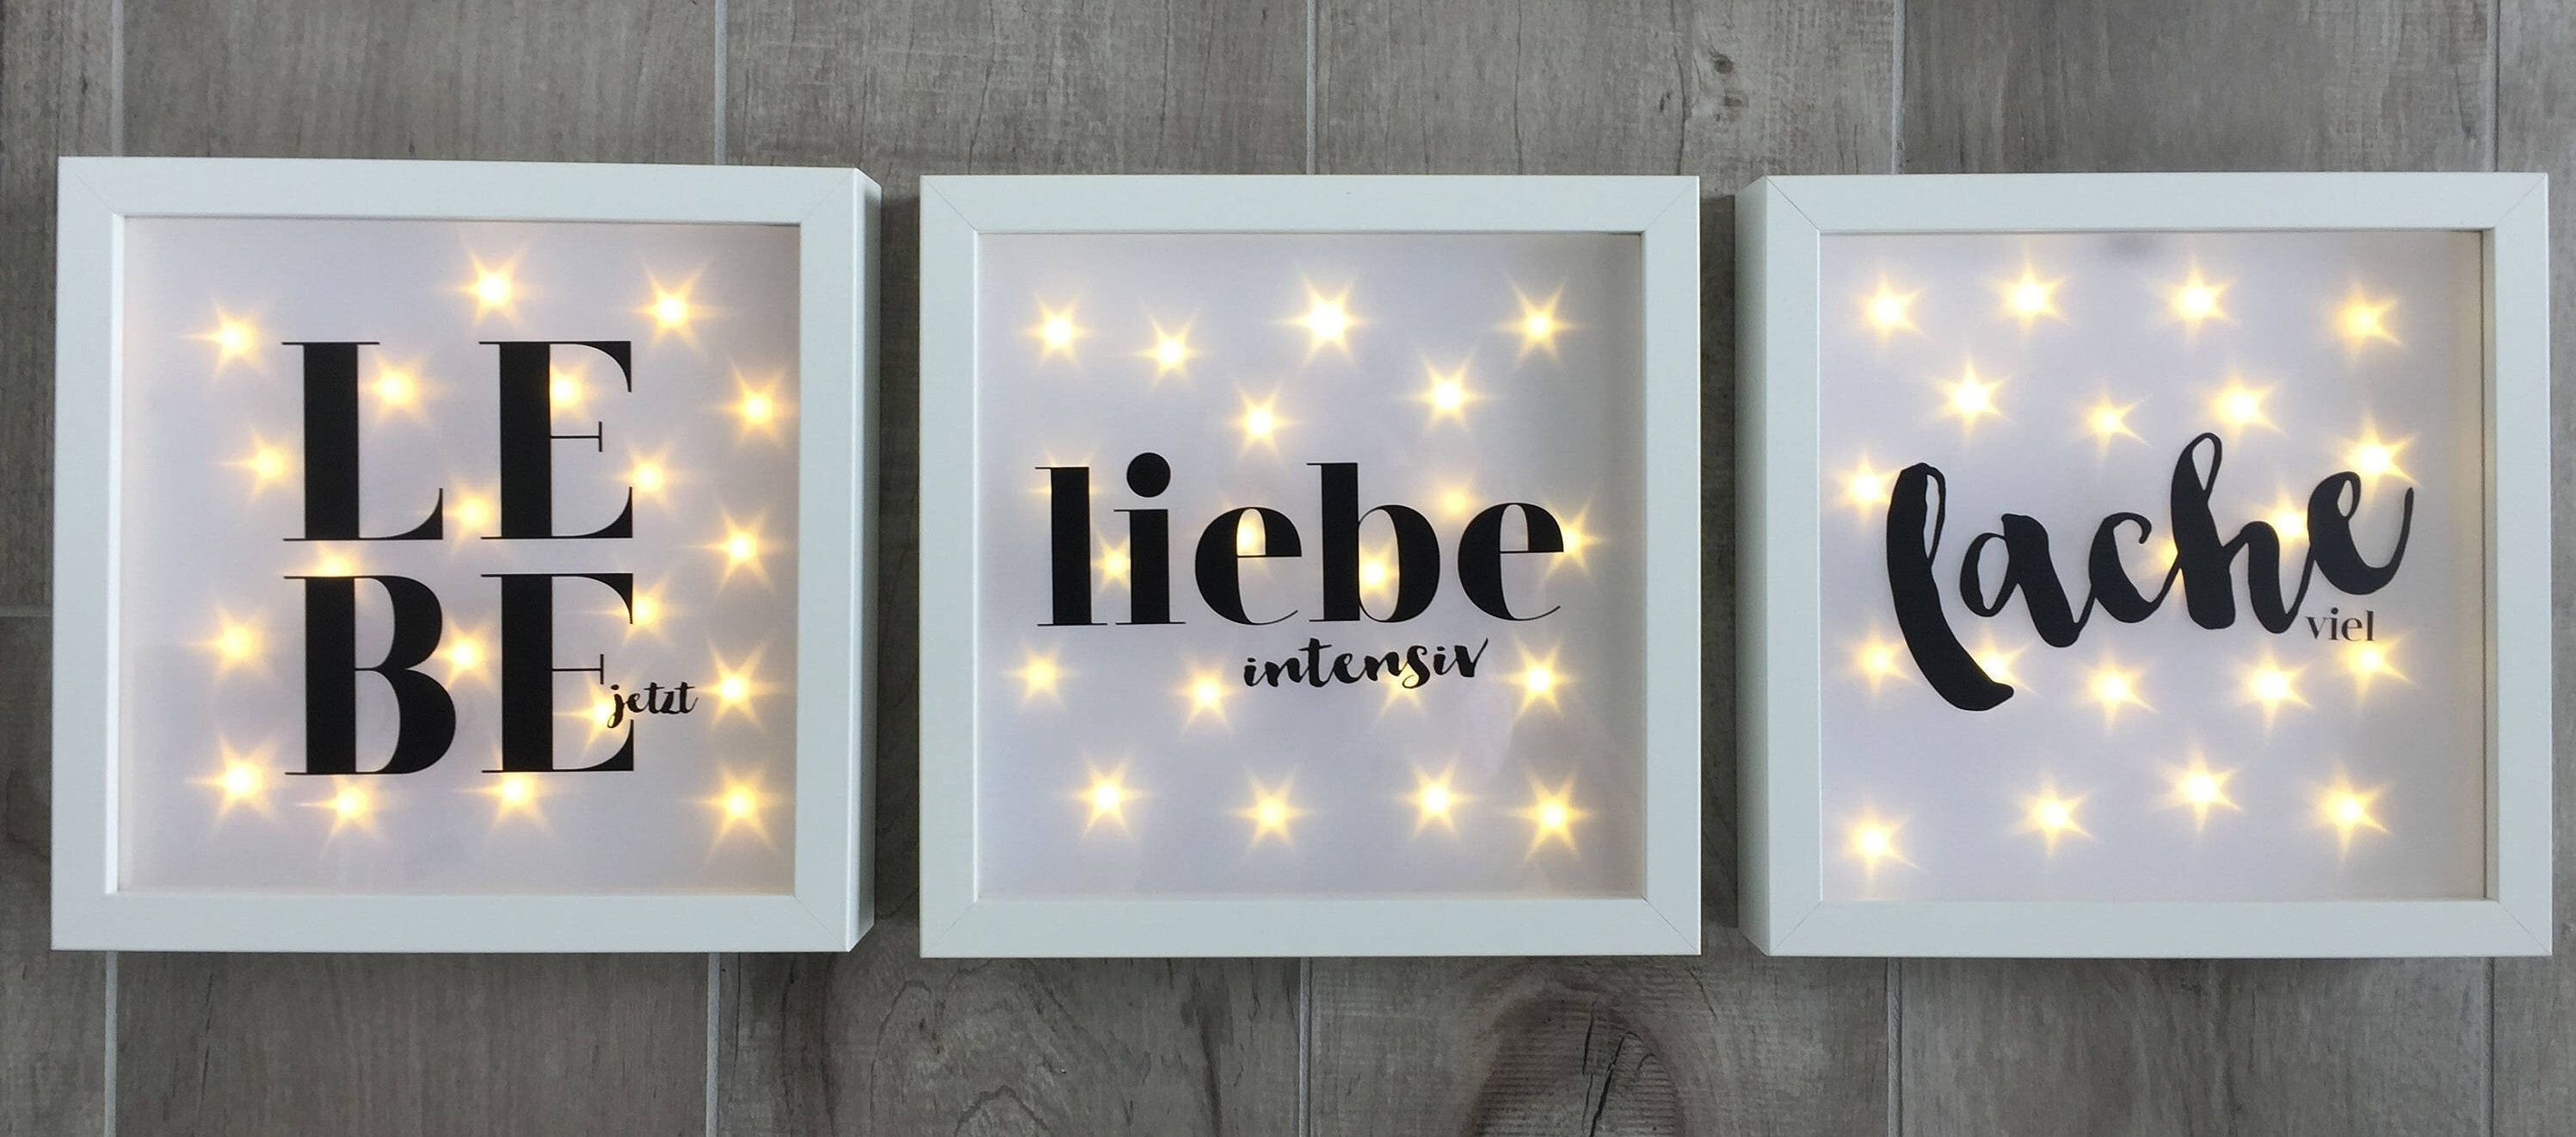 illuminated picture frame with spell wall led frame decoration ideen rund ums haus. Black Bedroom Furniture Sets. Home Design Ideas